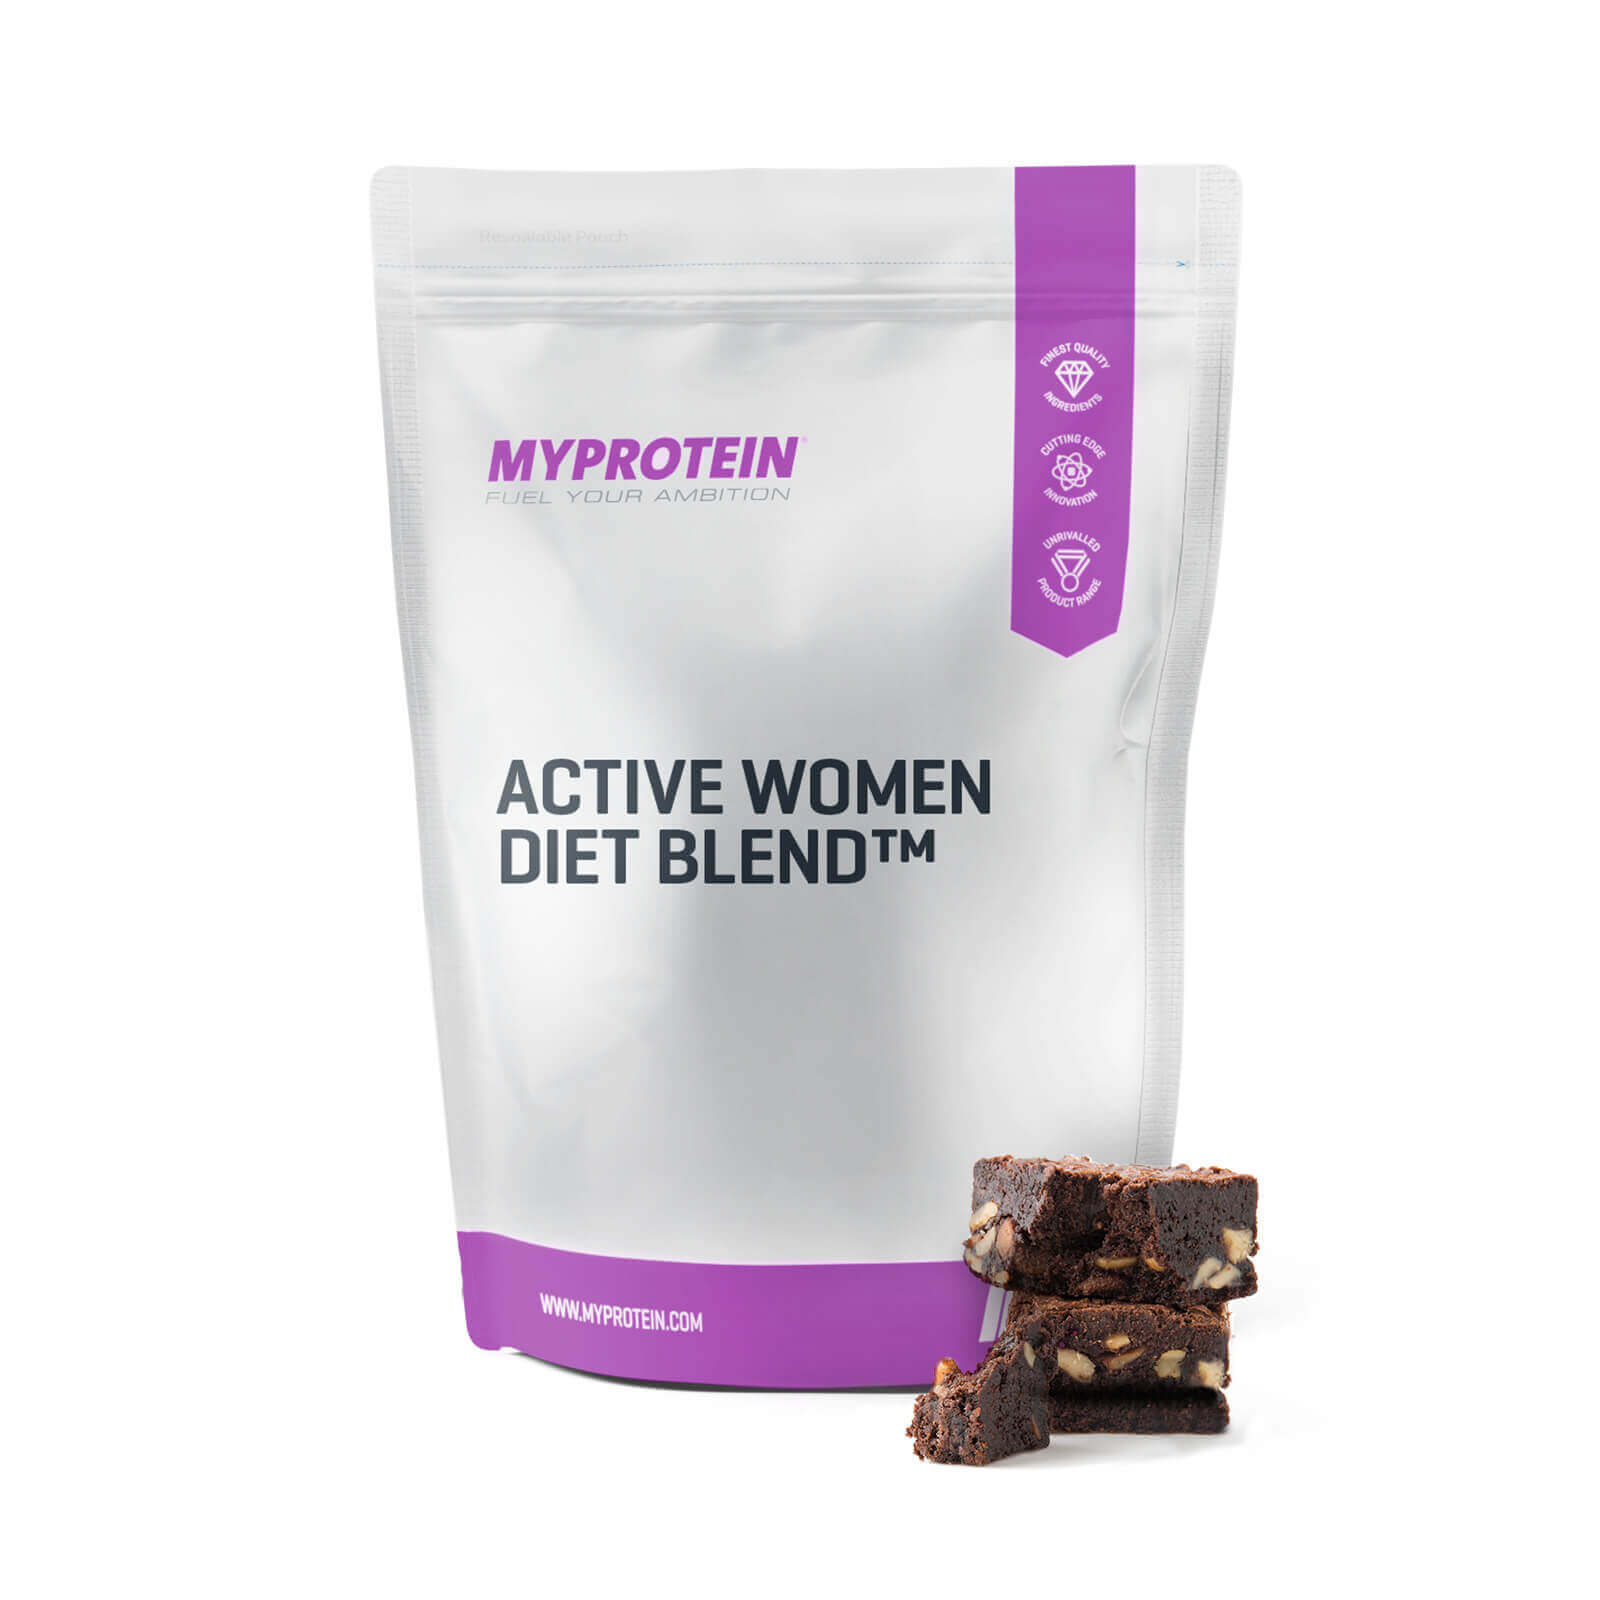 Active Women Diet Blend™